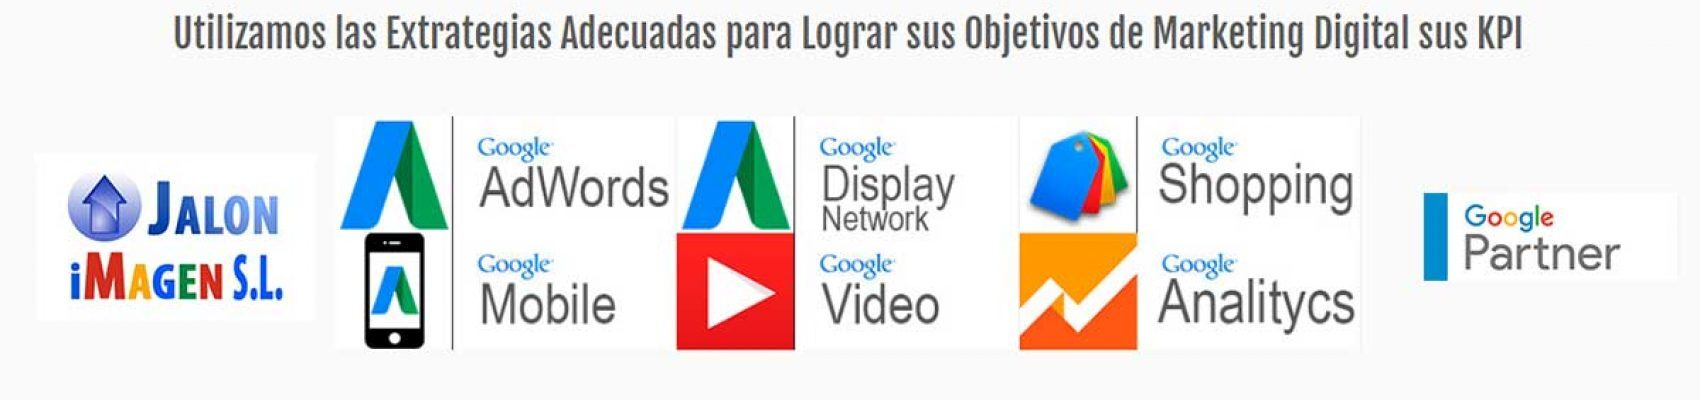 https://jalonimagen.com/wp-content/uploads/2019/03/estrategias-marketing-google-adwords-1200-1700x400.jpg